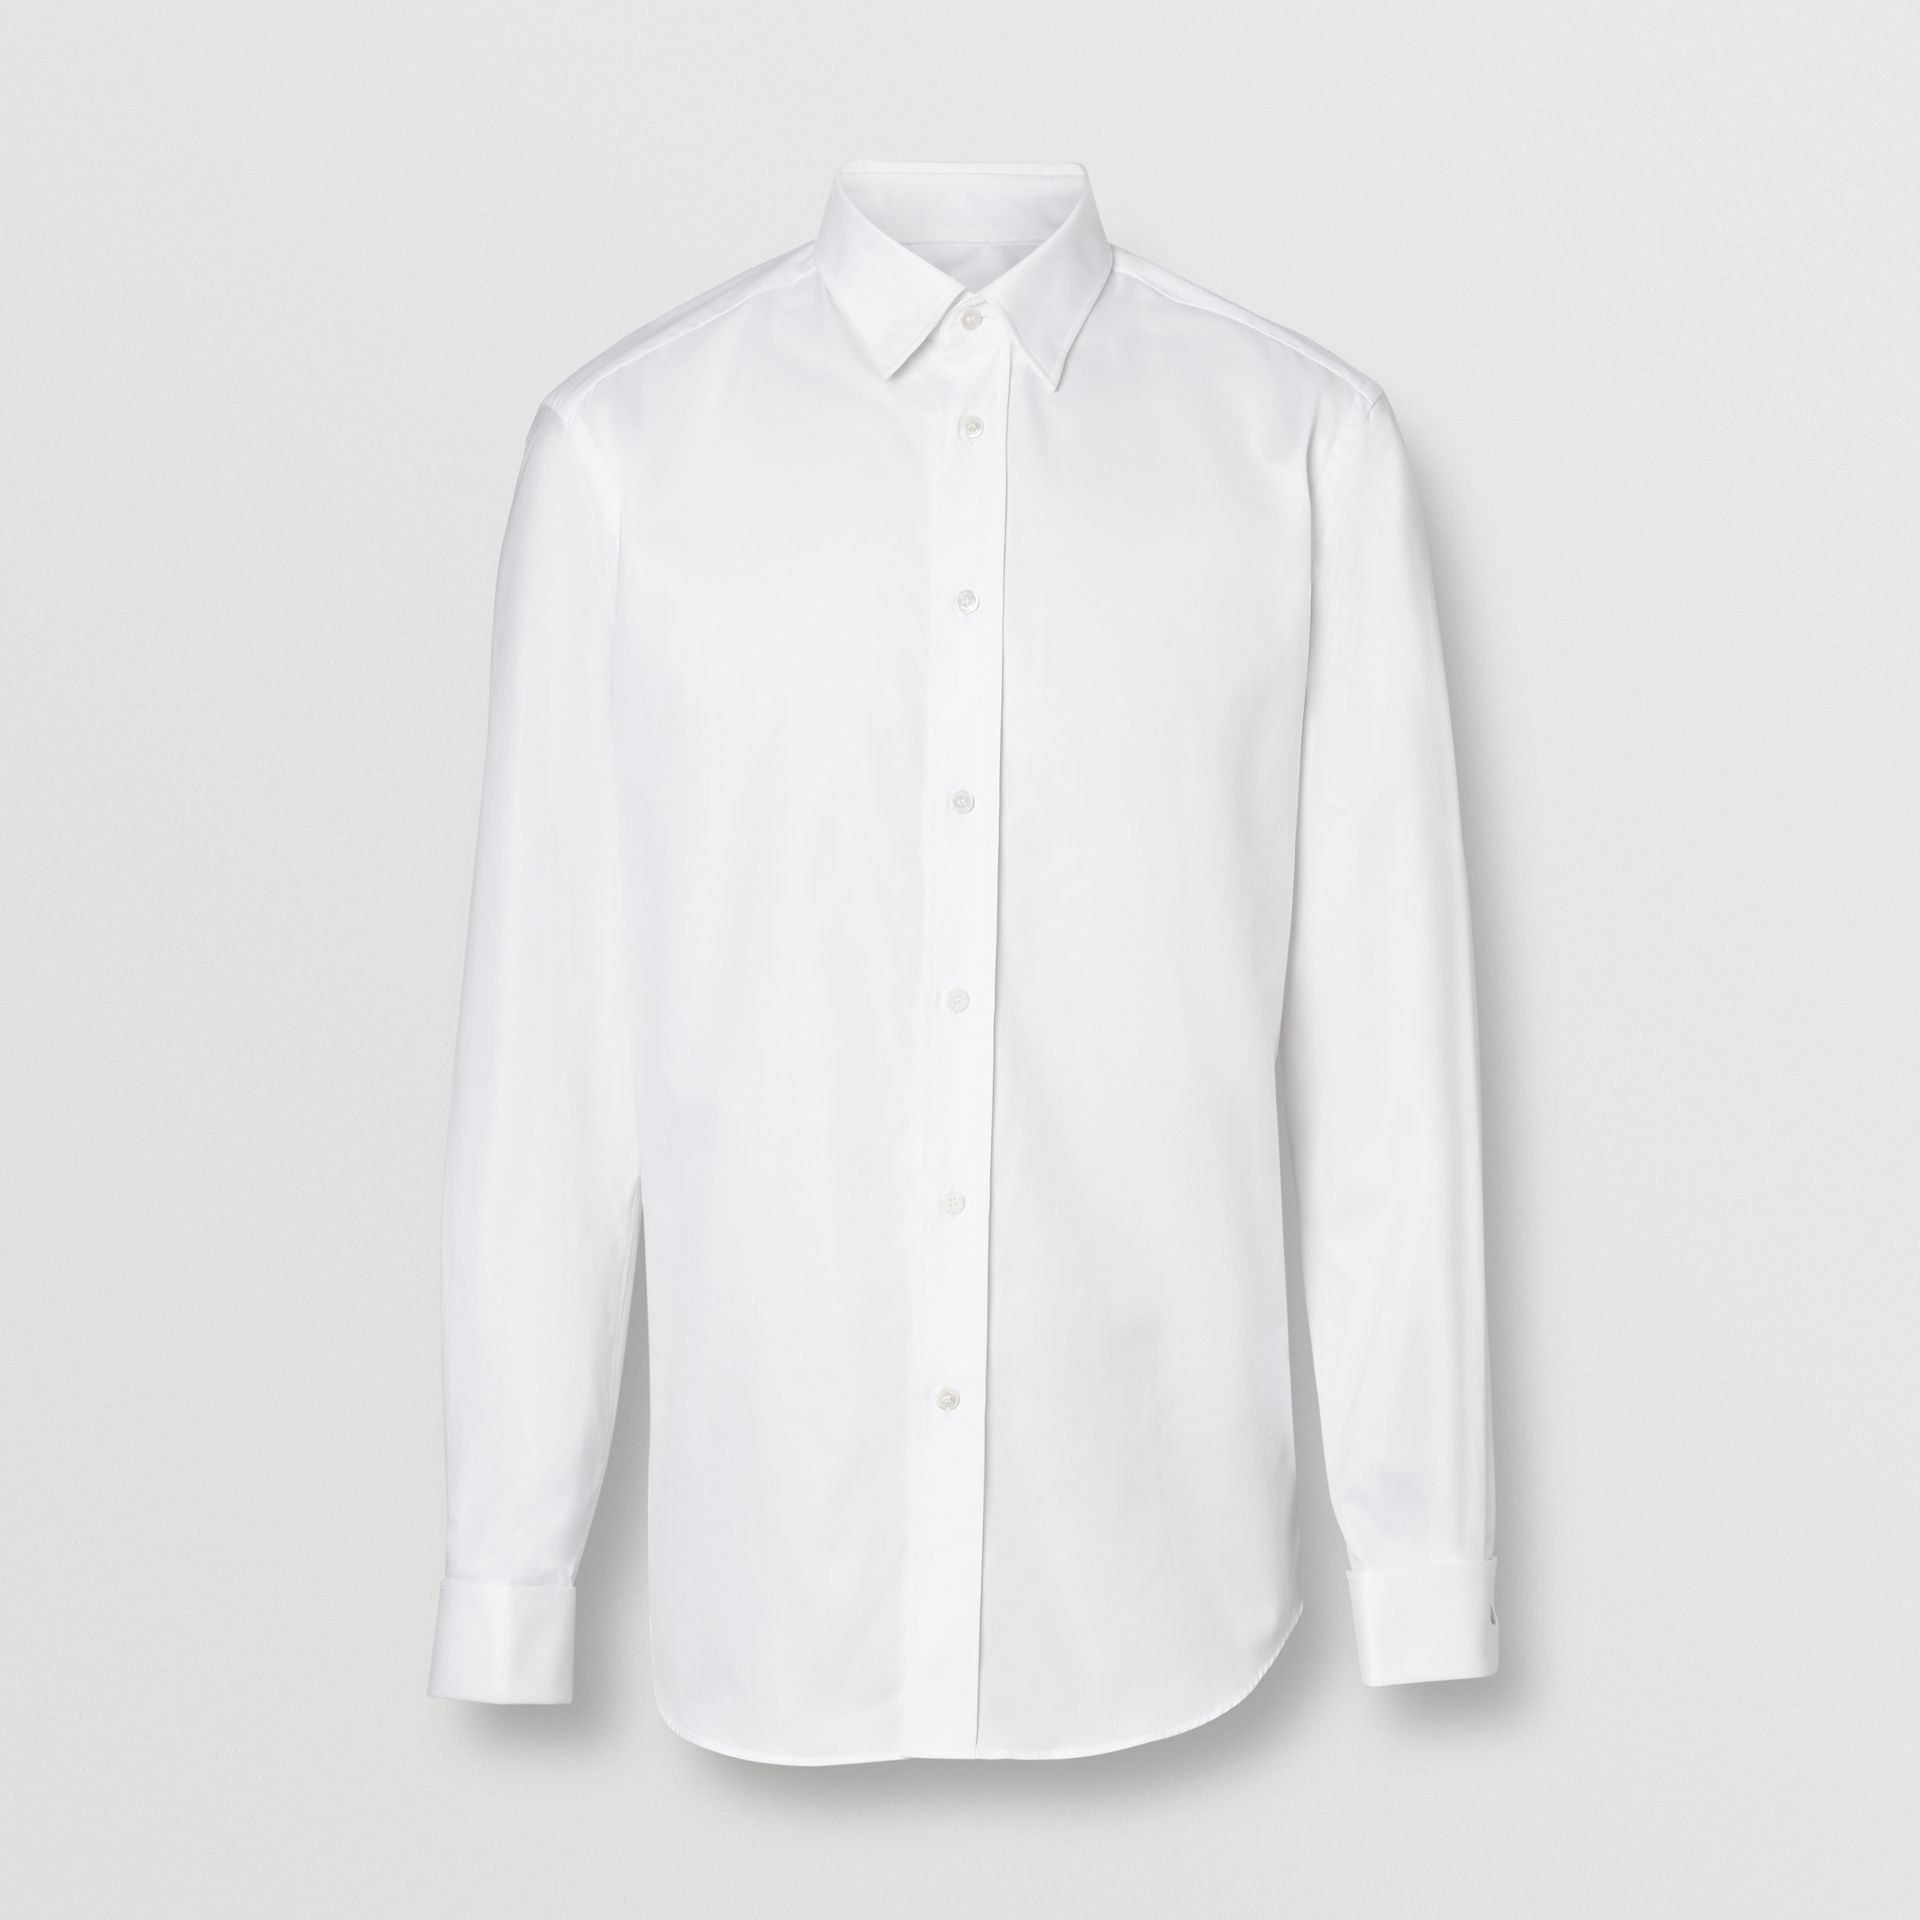 Classic Fit Monogram Motif Cotton Oxford Shirt in White - Men | Burberry Canada - gallery image 3